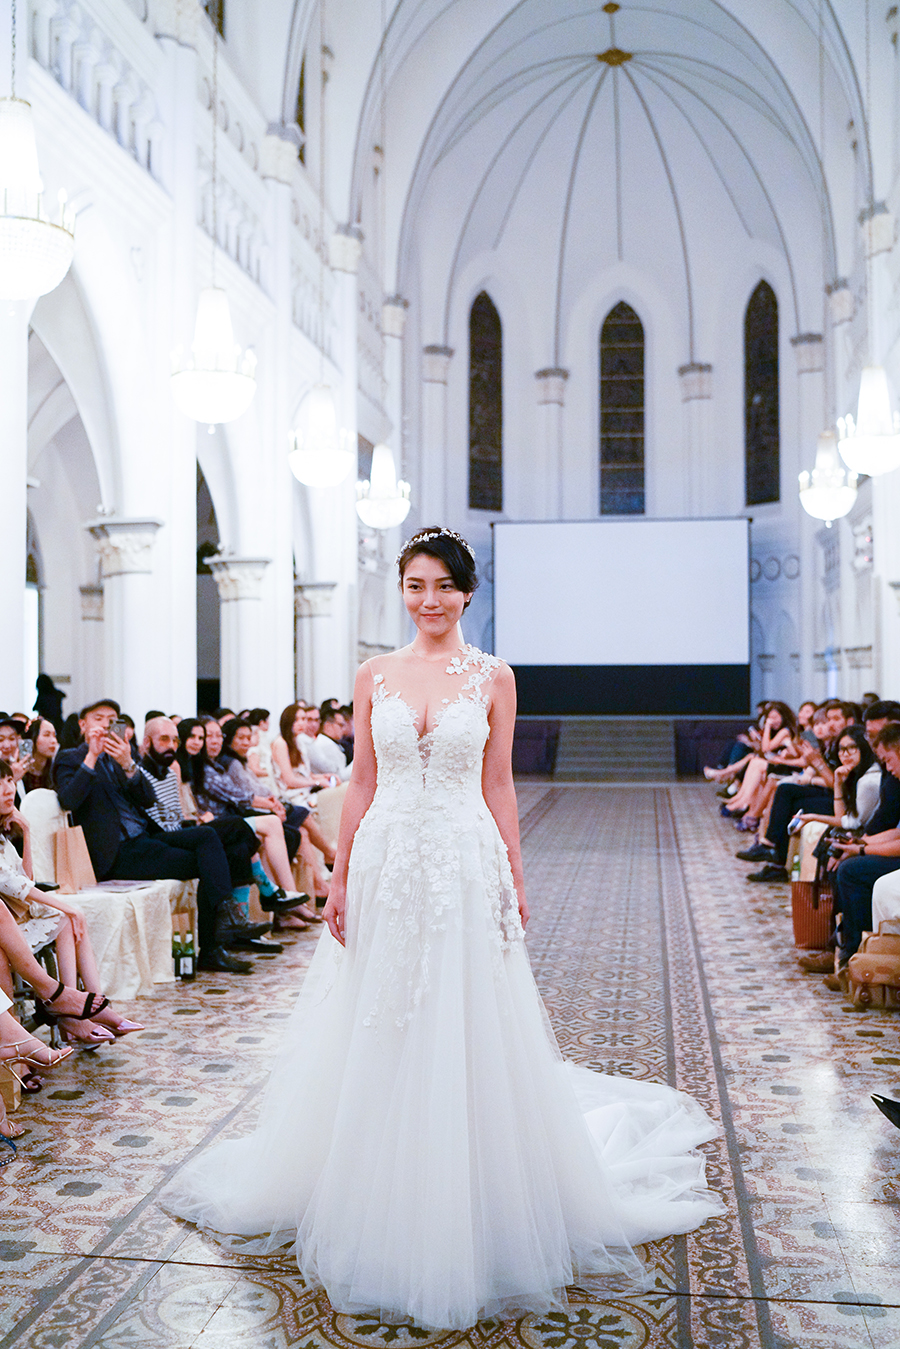 37-The-Wedding-Scoop-Rebecca-Caroline-Bridal-Singapore